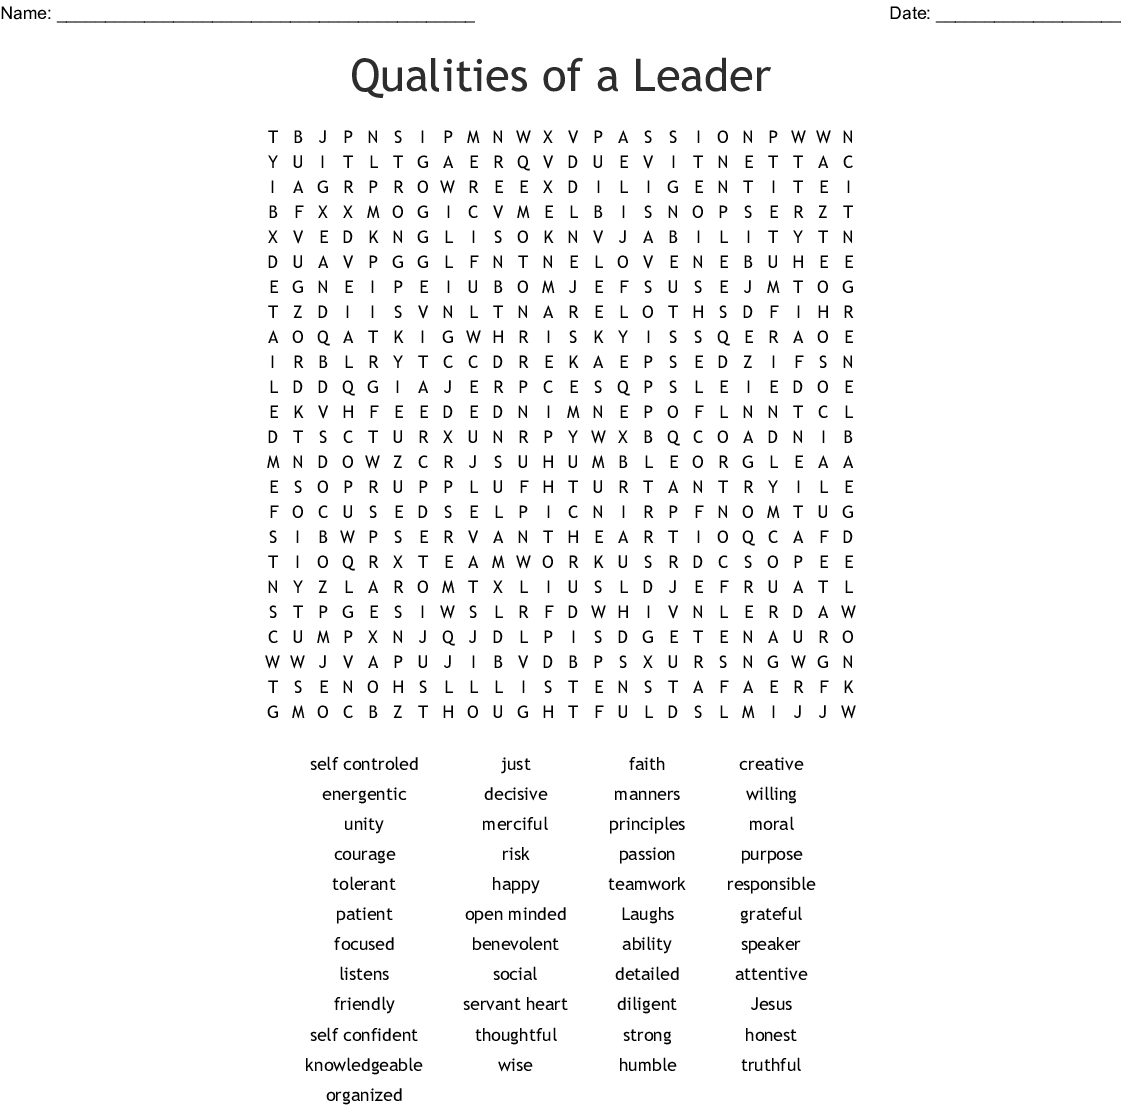 Qualities Of A Leader Word Search - Wordmint